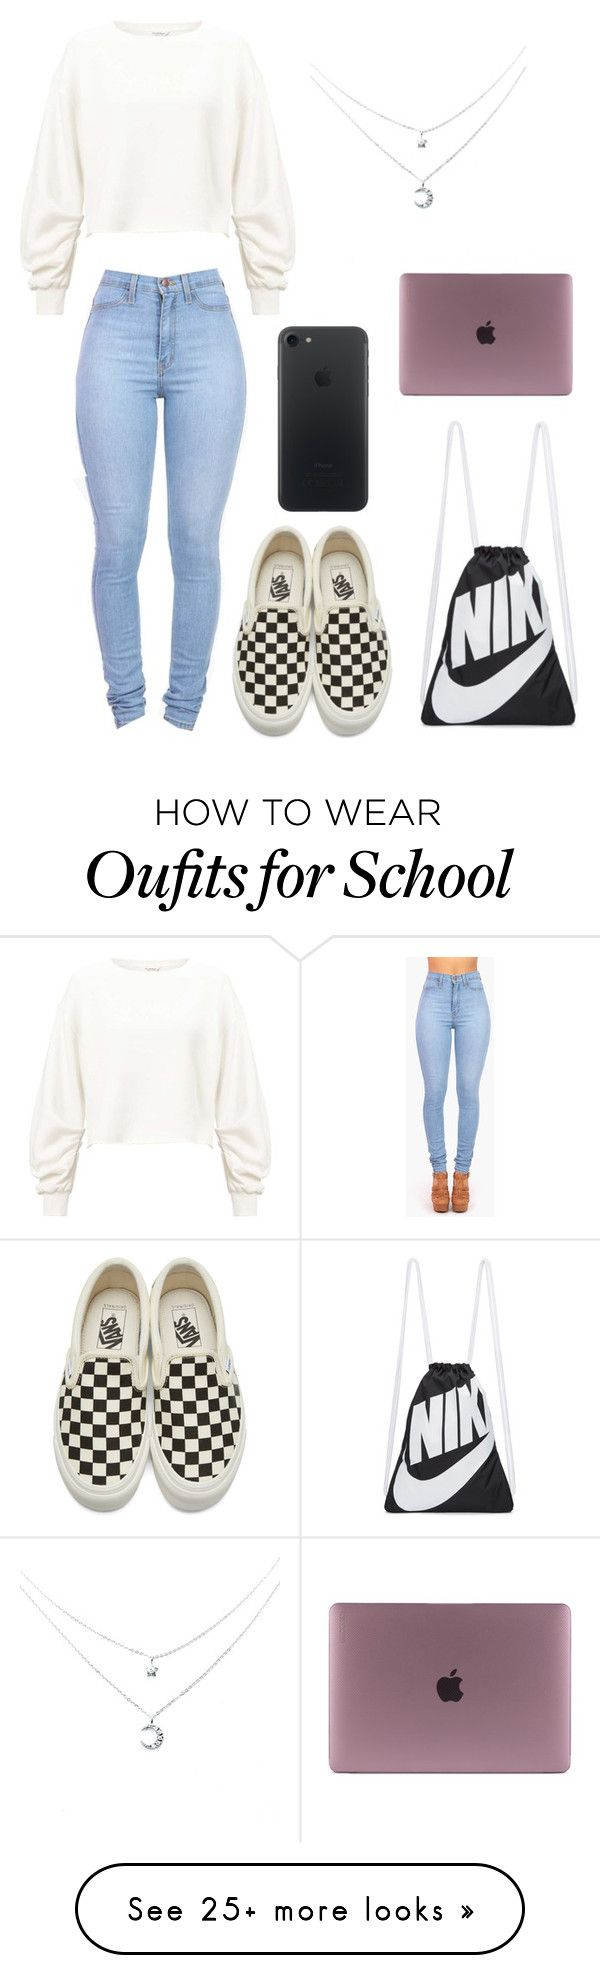 """I am seriously about to drop out of school ☹️"" by dogs109 on Polyvore featuring Miss Selfridge, Vibrant, Vans and NIKE"